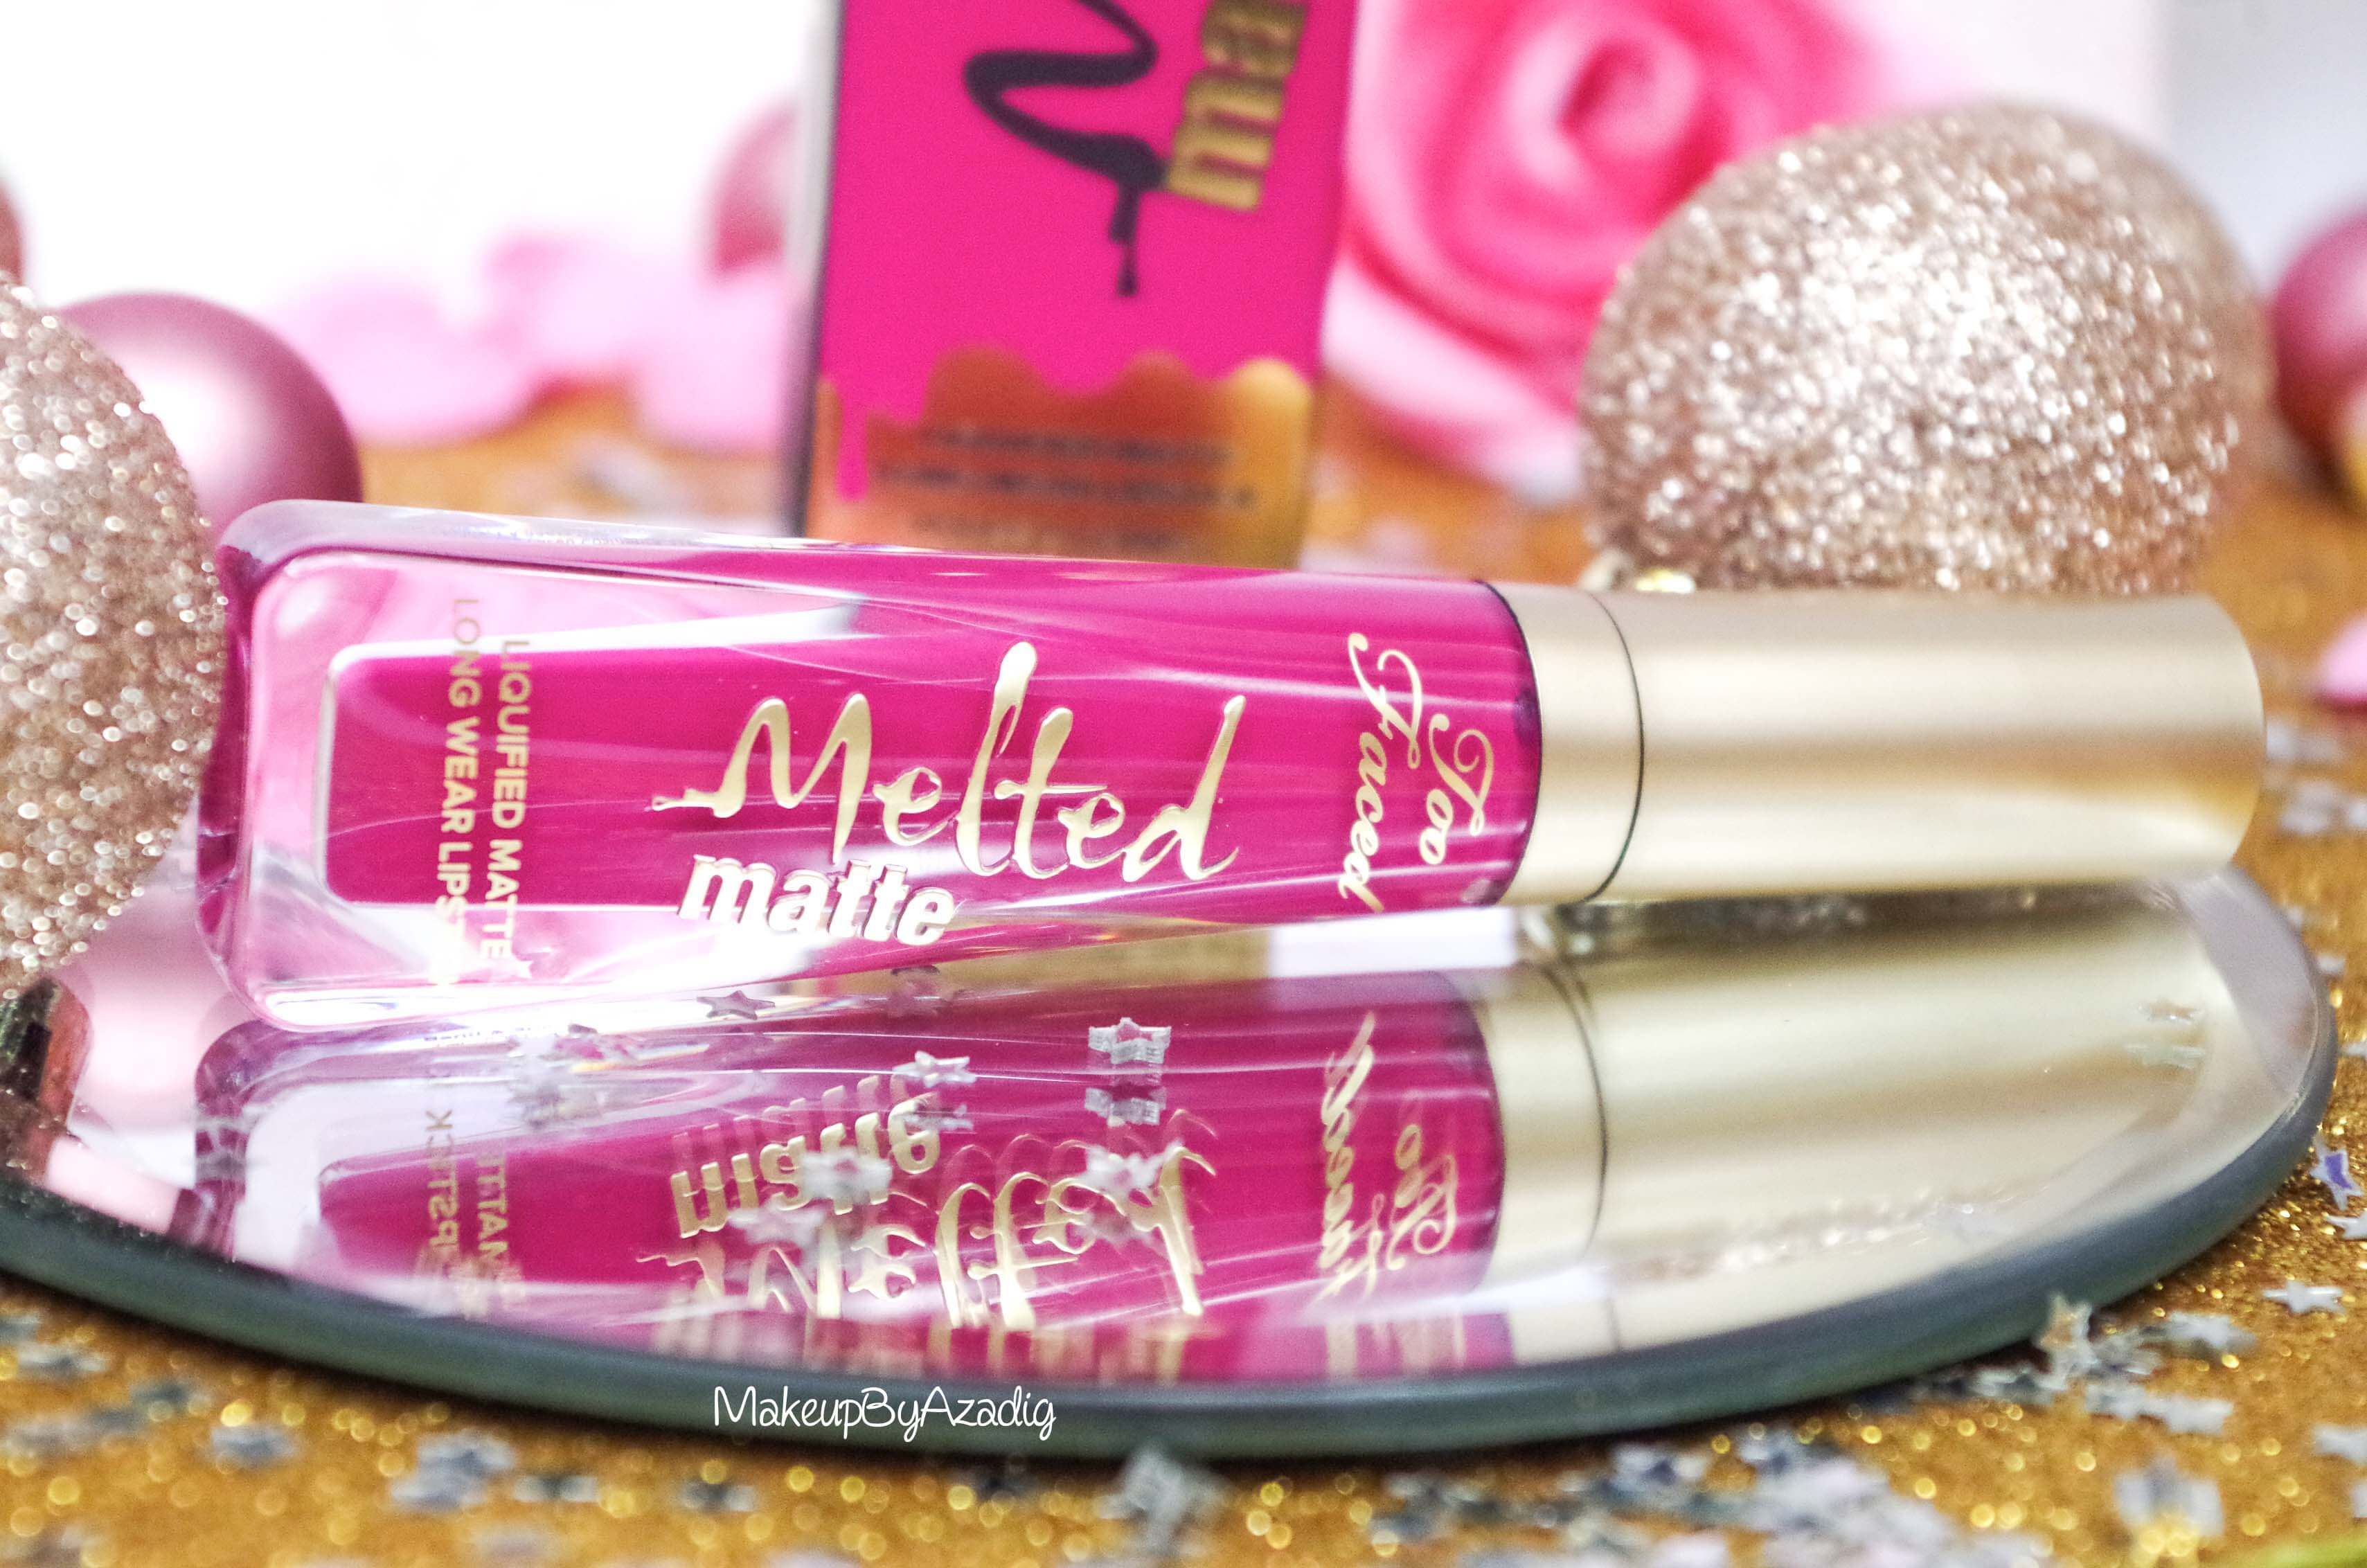 makeupbyazadig-melted-matte-queenb-bendandsnap-influencer-too-faced-rouge-levres-revue-avis-prix-sephora-paris-blog-liquide-lips